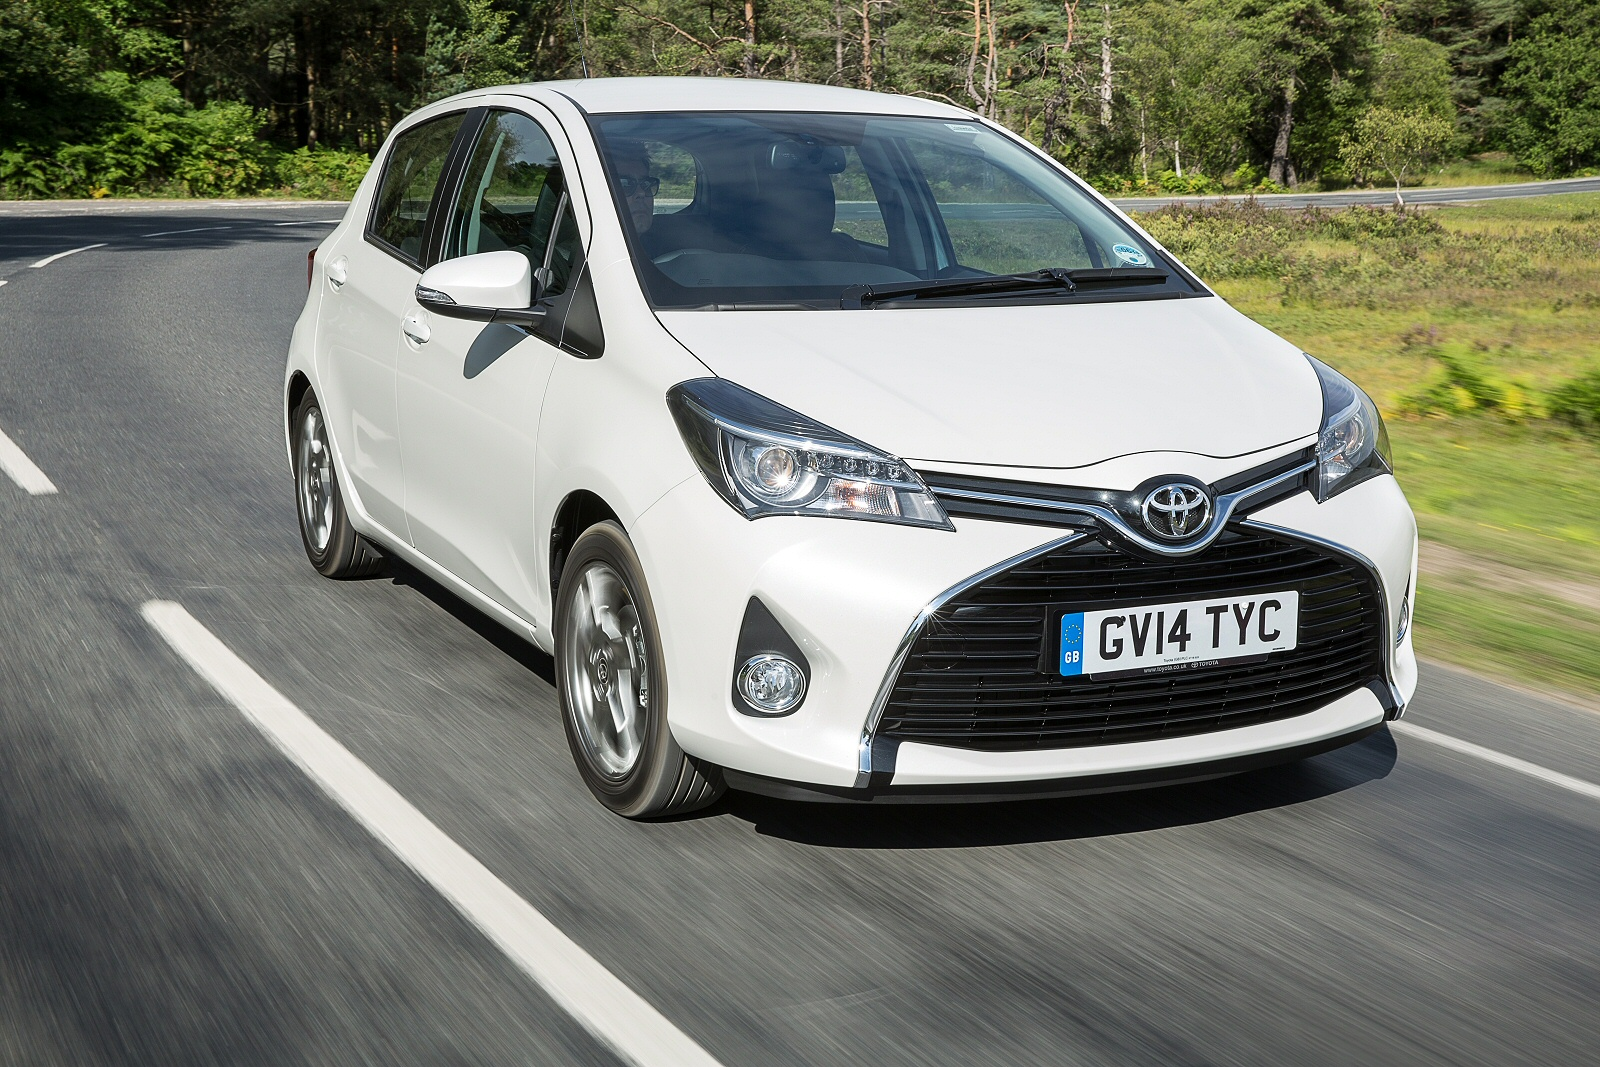 new toyota yaris 1 5 vvt i icon tech 5dr petrol hatchback. Black Bedroom Furniture Sets. Home Design Ideas